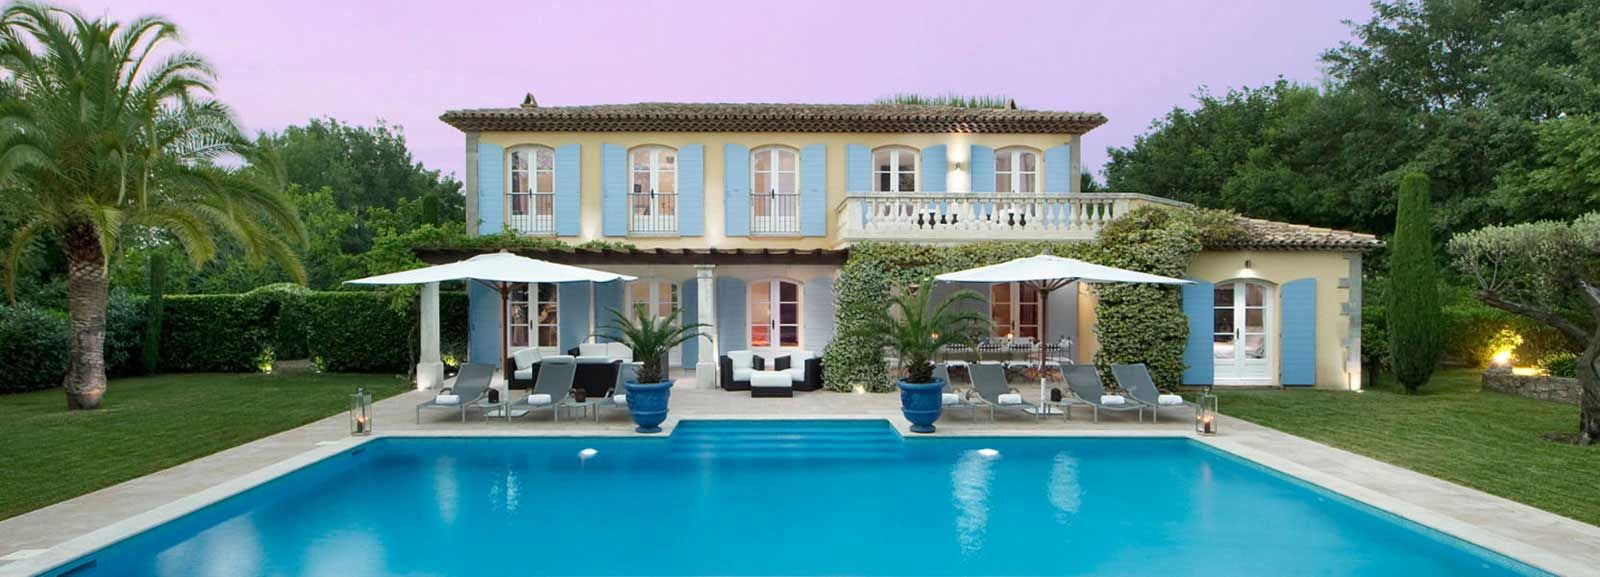 Welcome To DivinoVillas We Provide An Elite Range Of Villas In Spain,  France, Italy